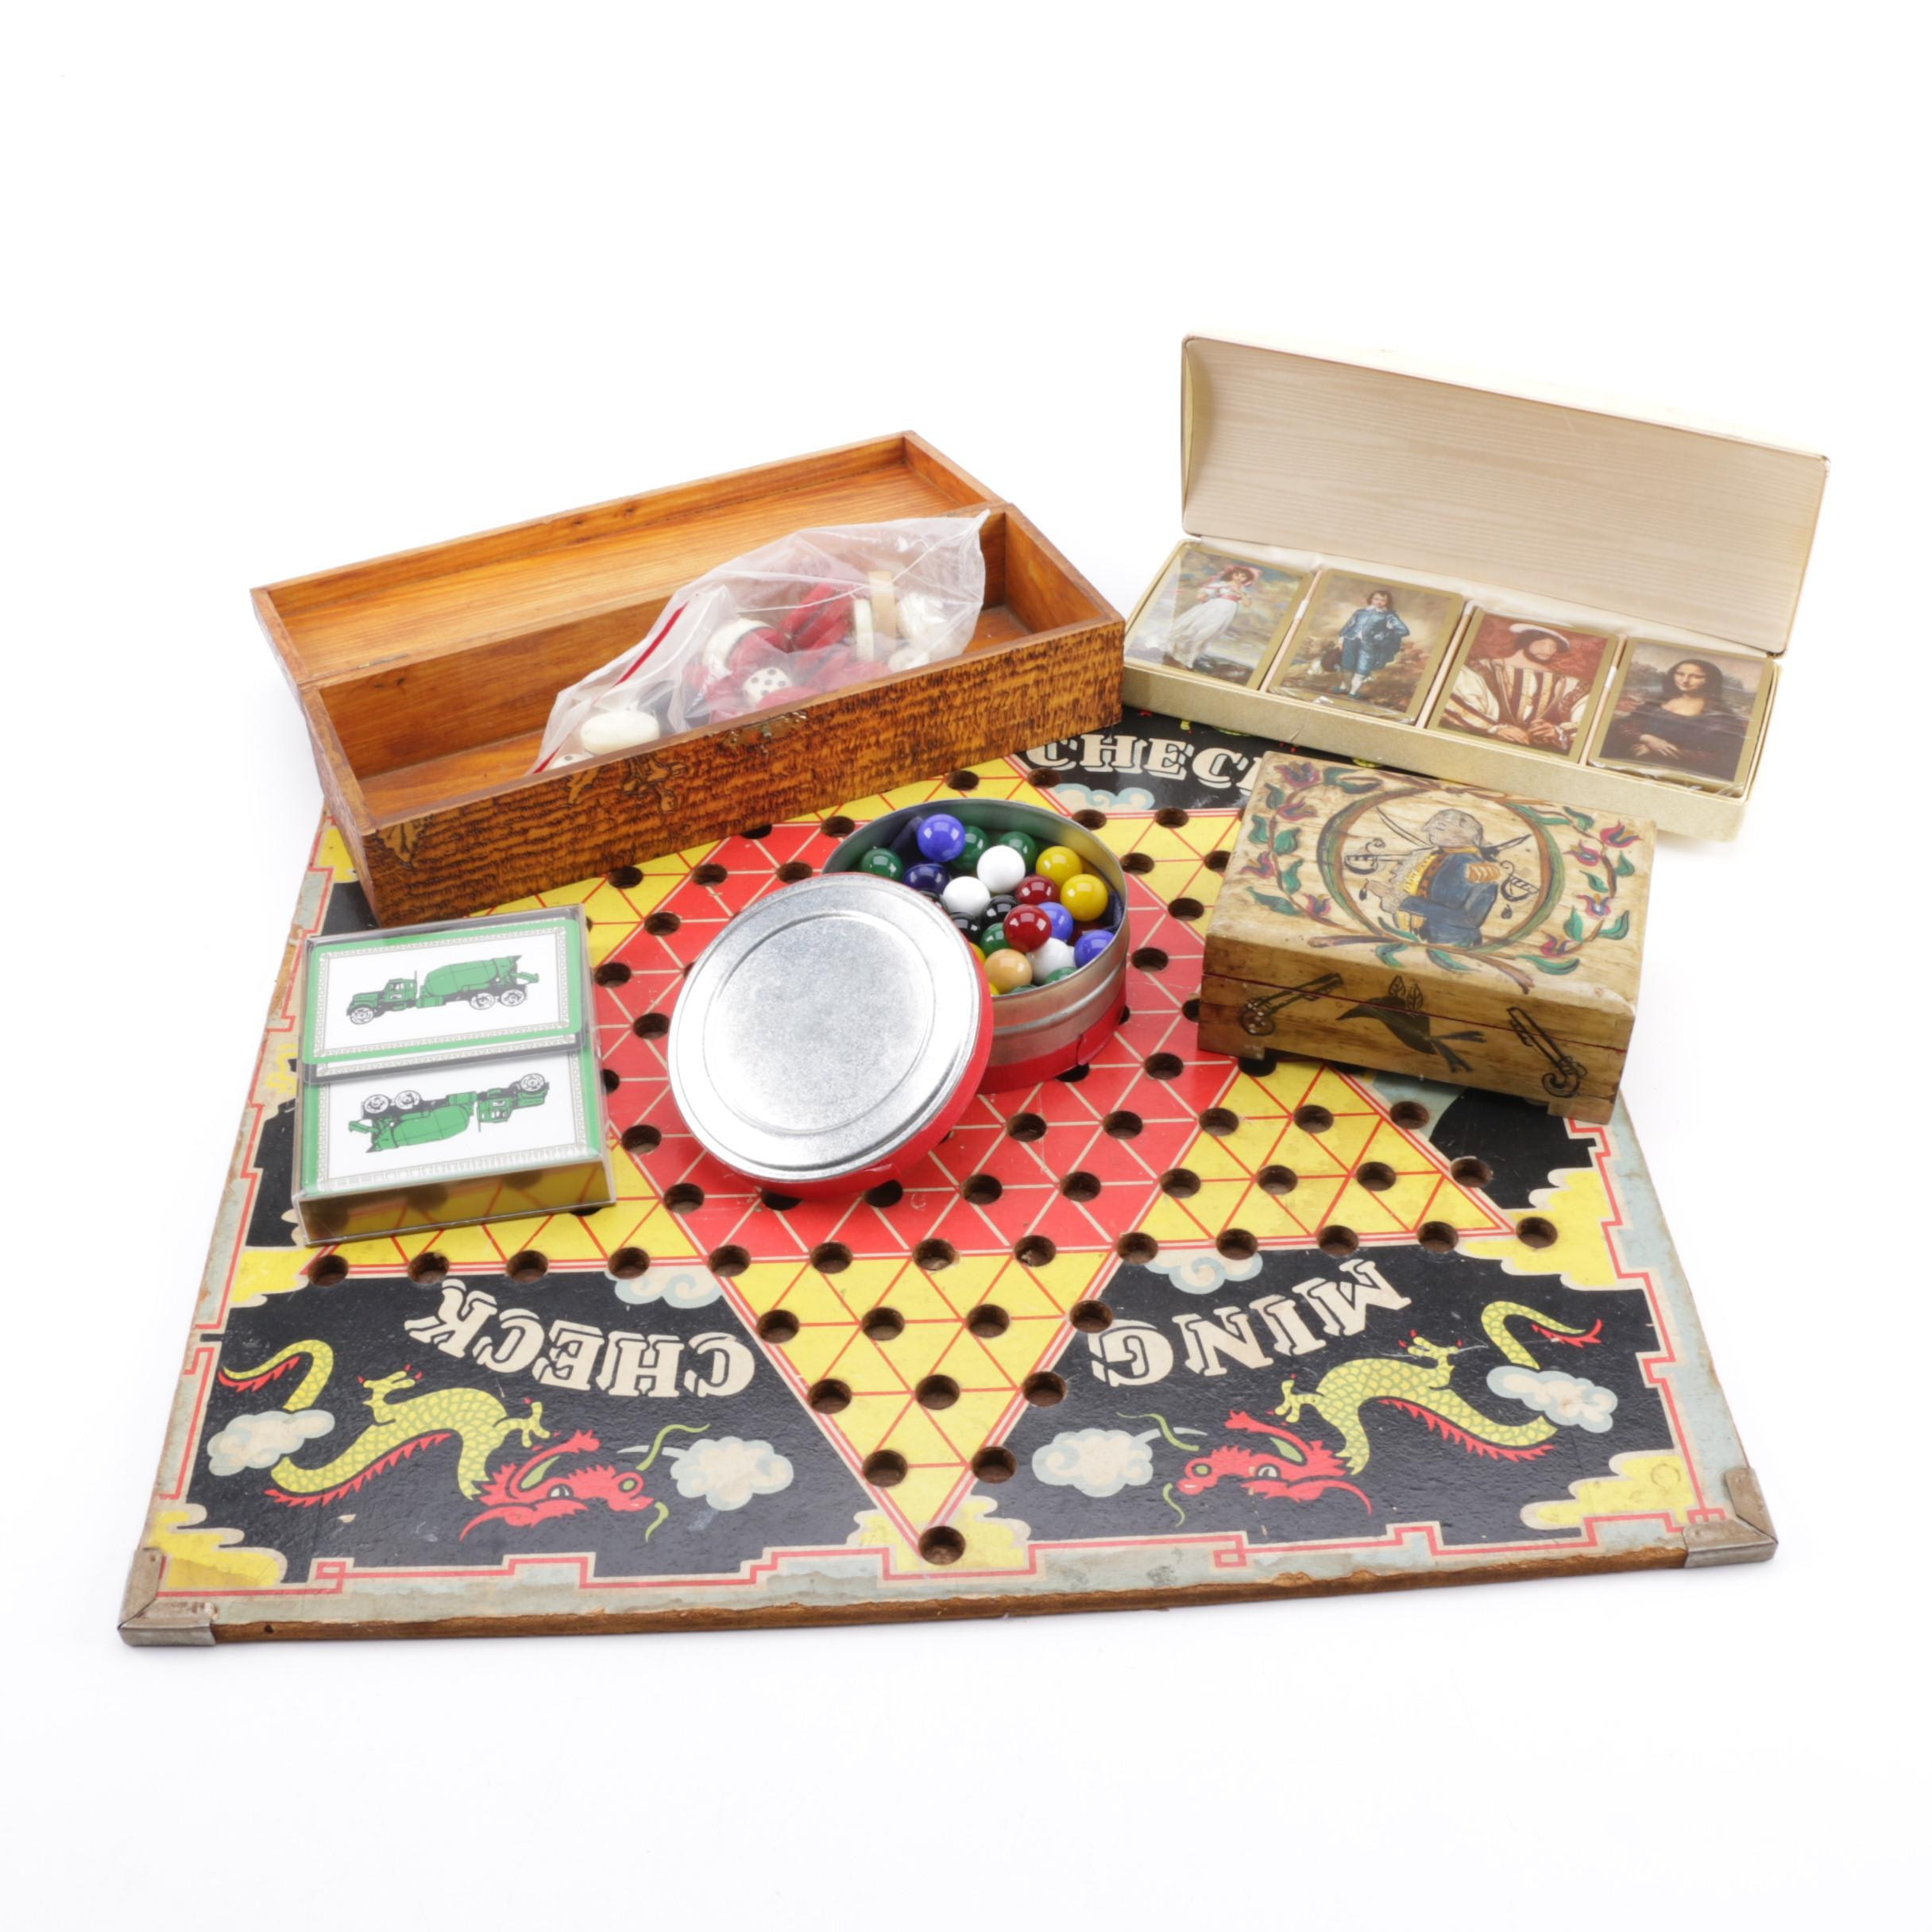 Vintage Ming Check Chinese Checker Board and Game Accessories